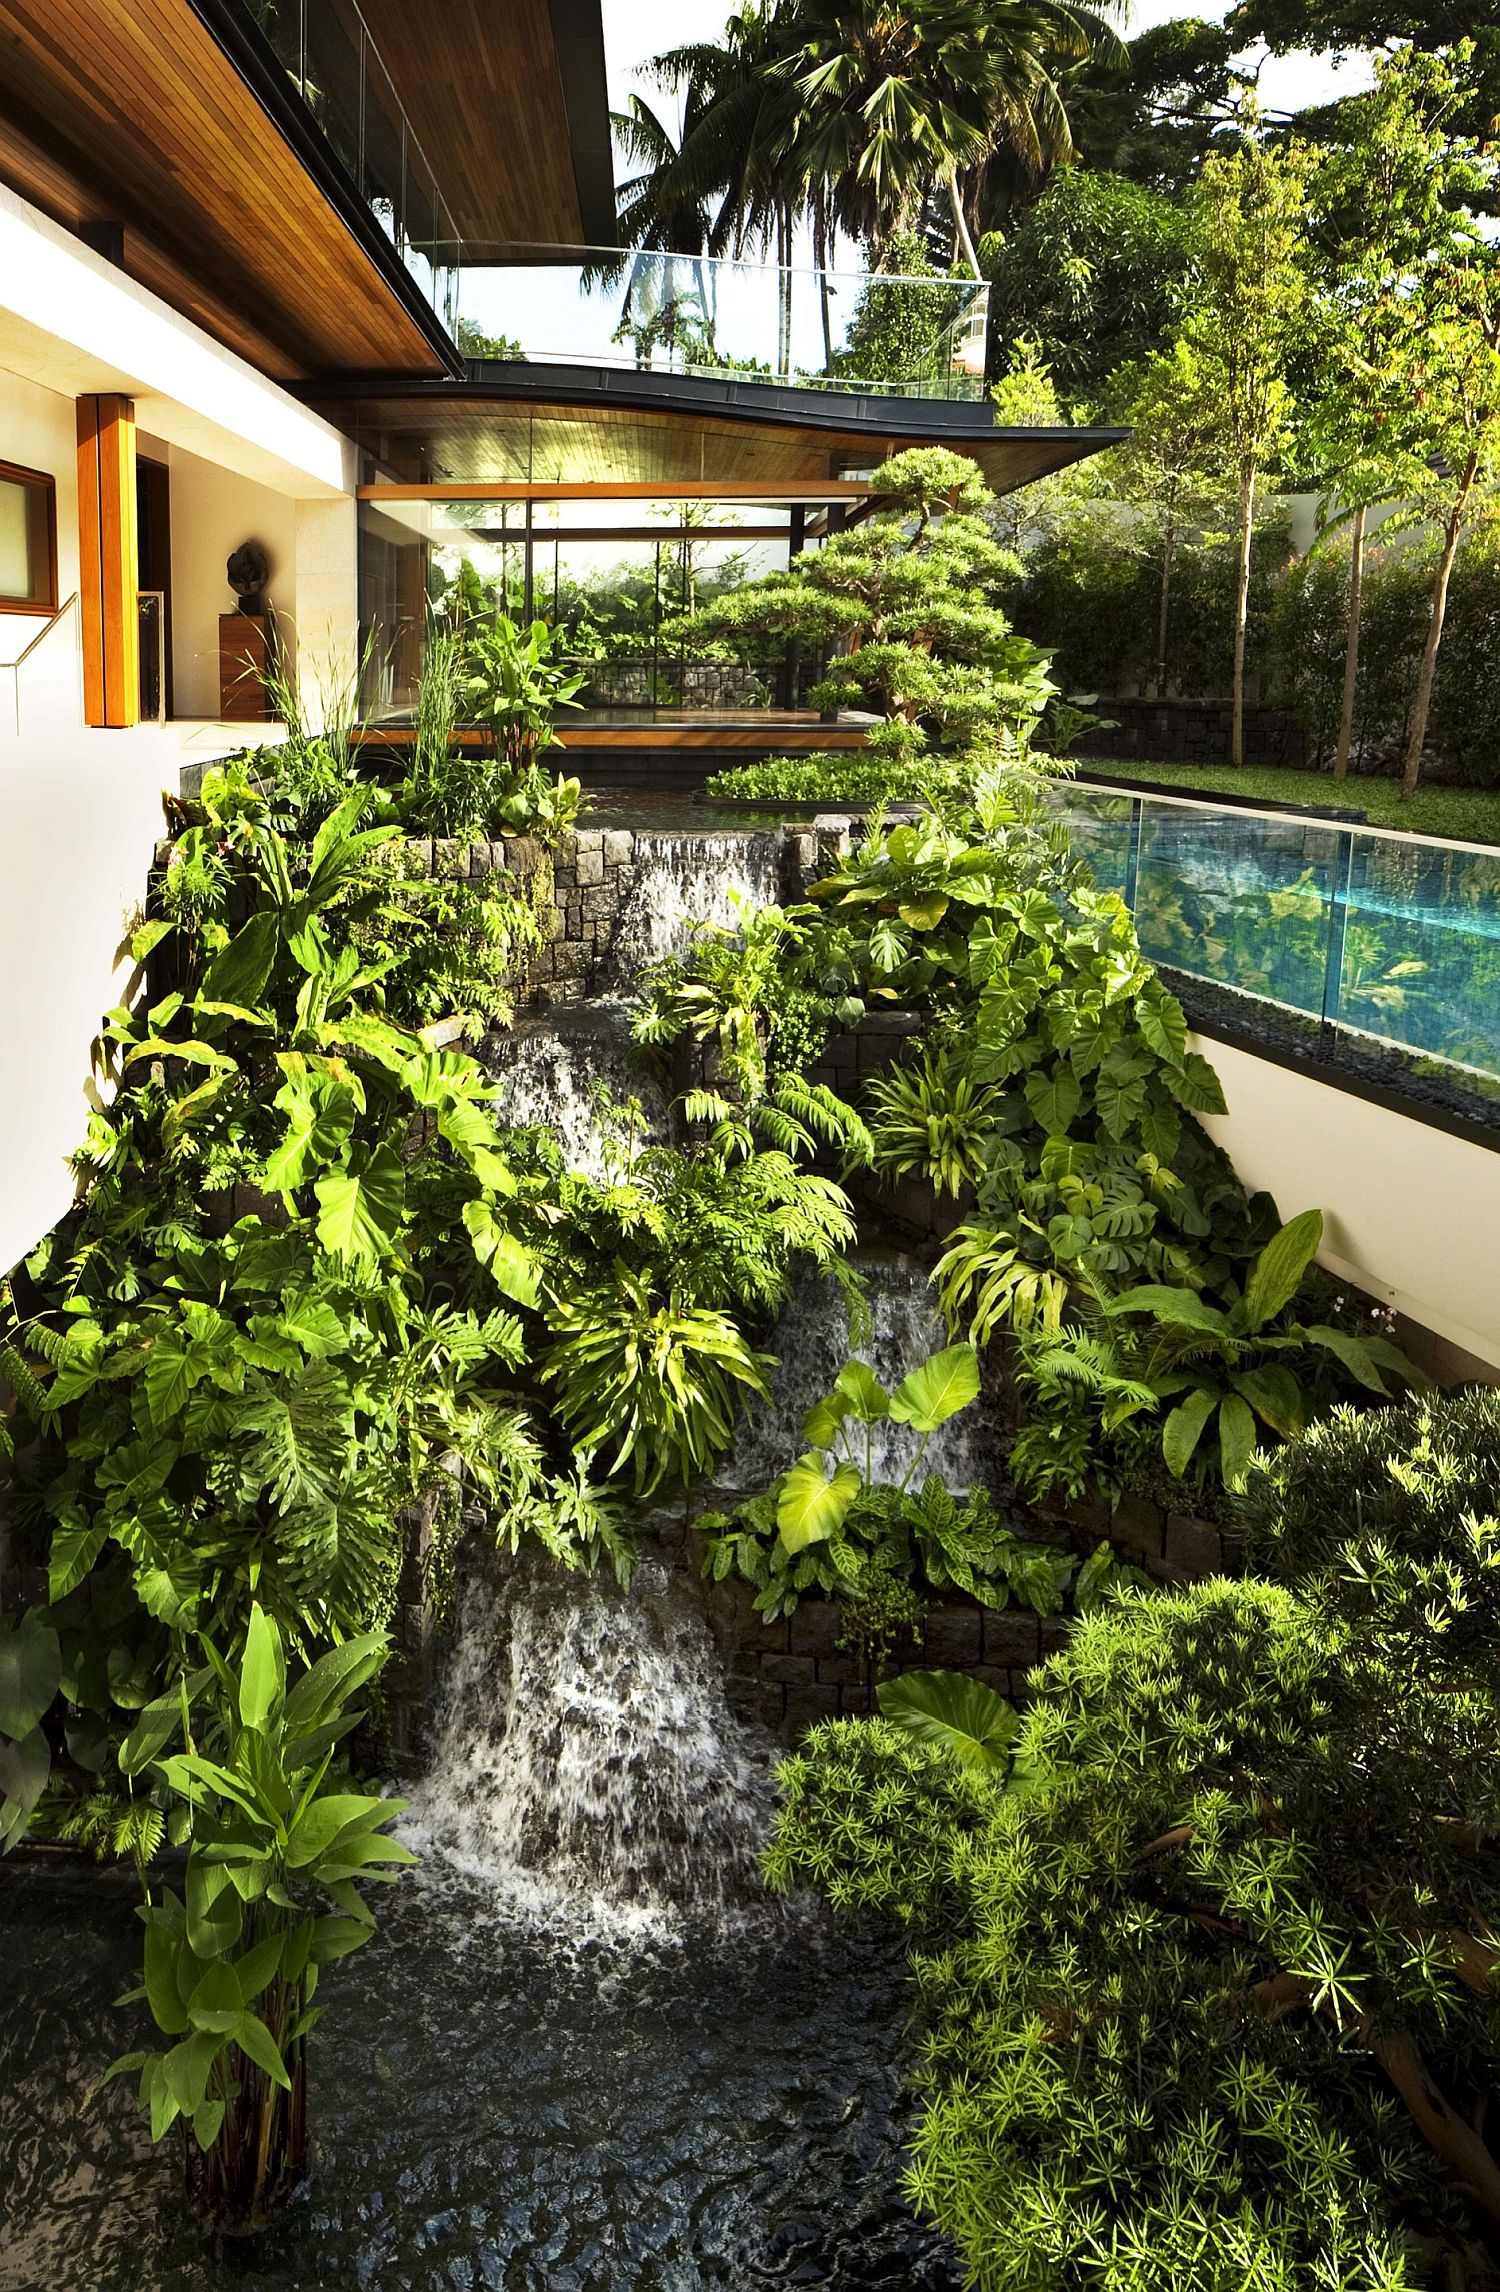 Natural waterfalls and pool area around the house